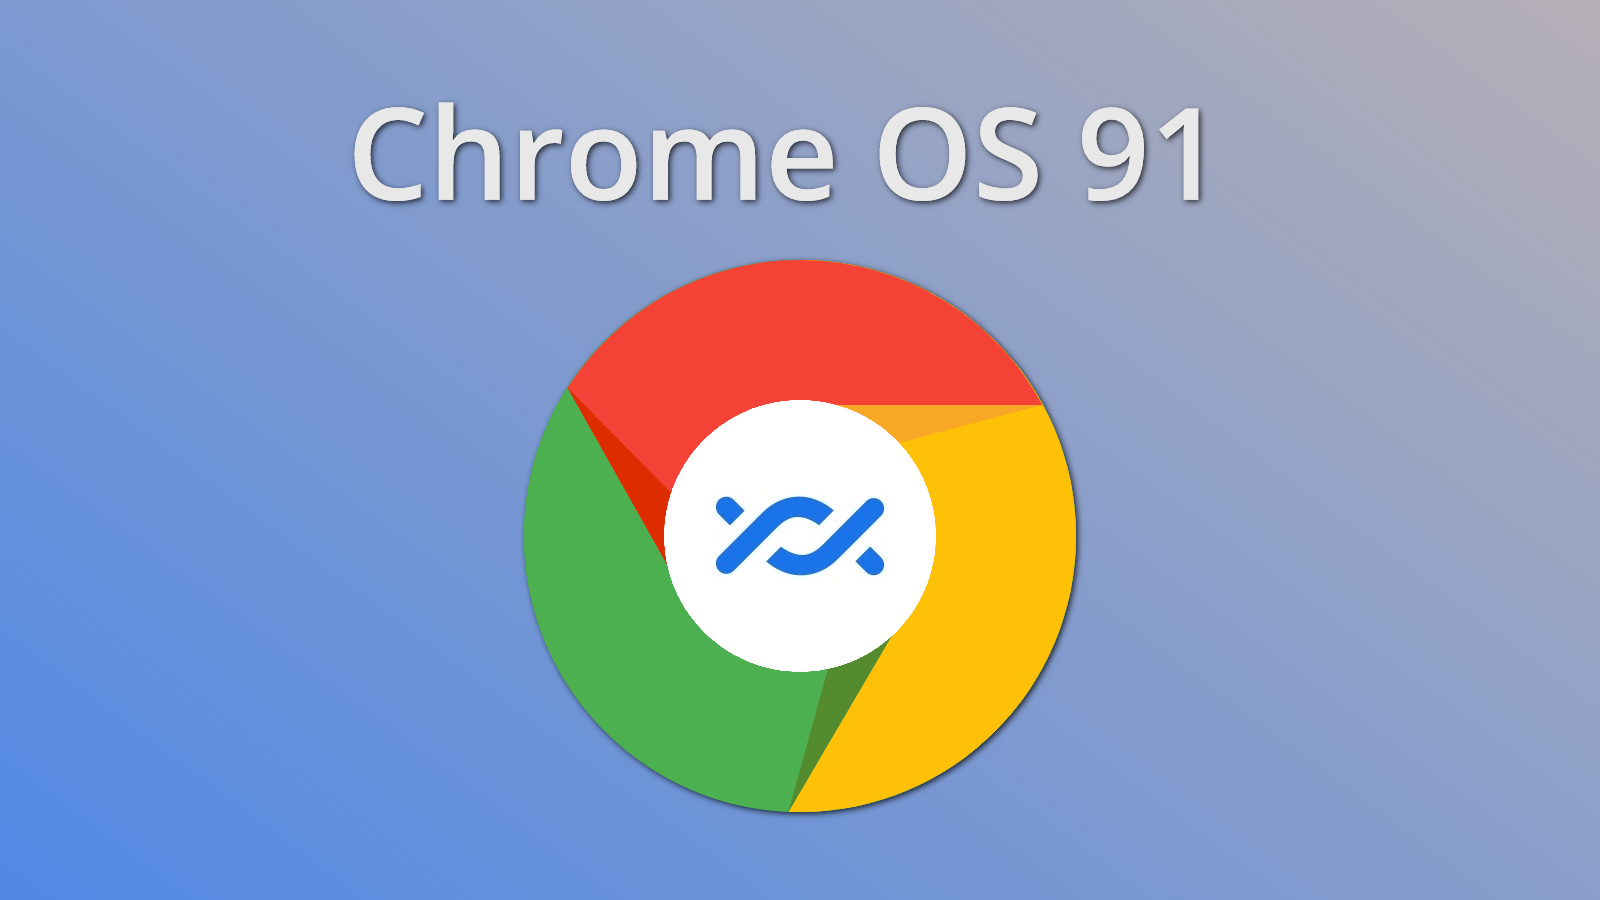 Nearby Share arrives as Chrome OS 91 begins rolling out